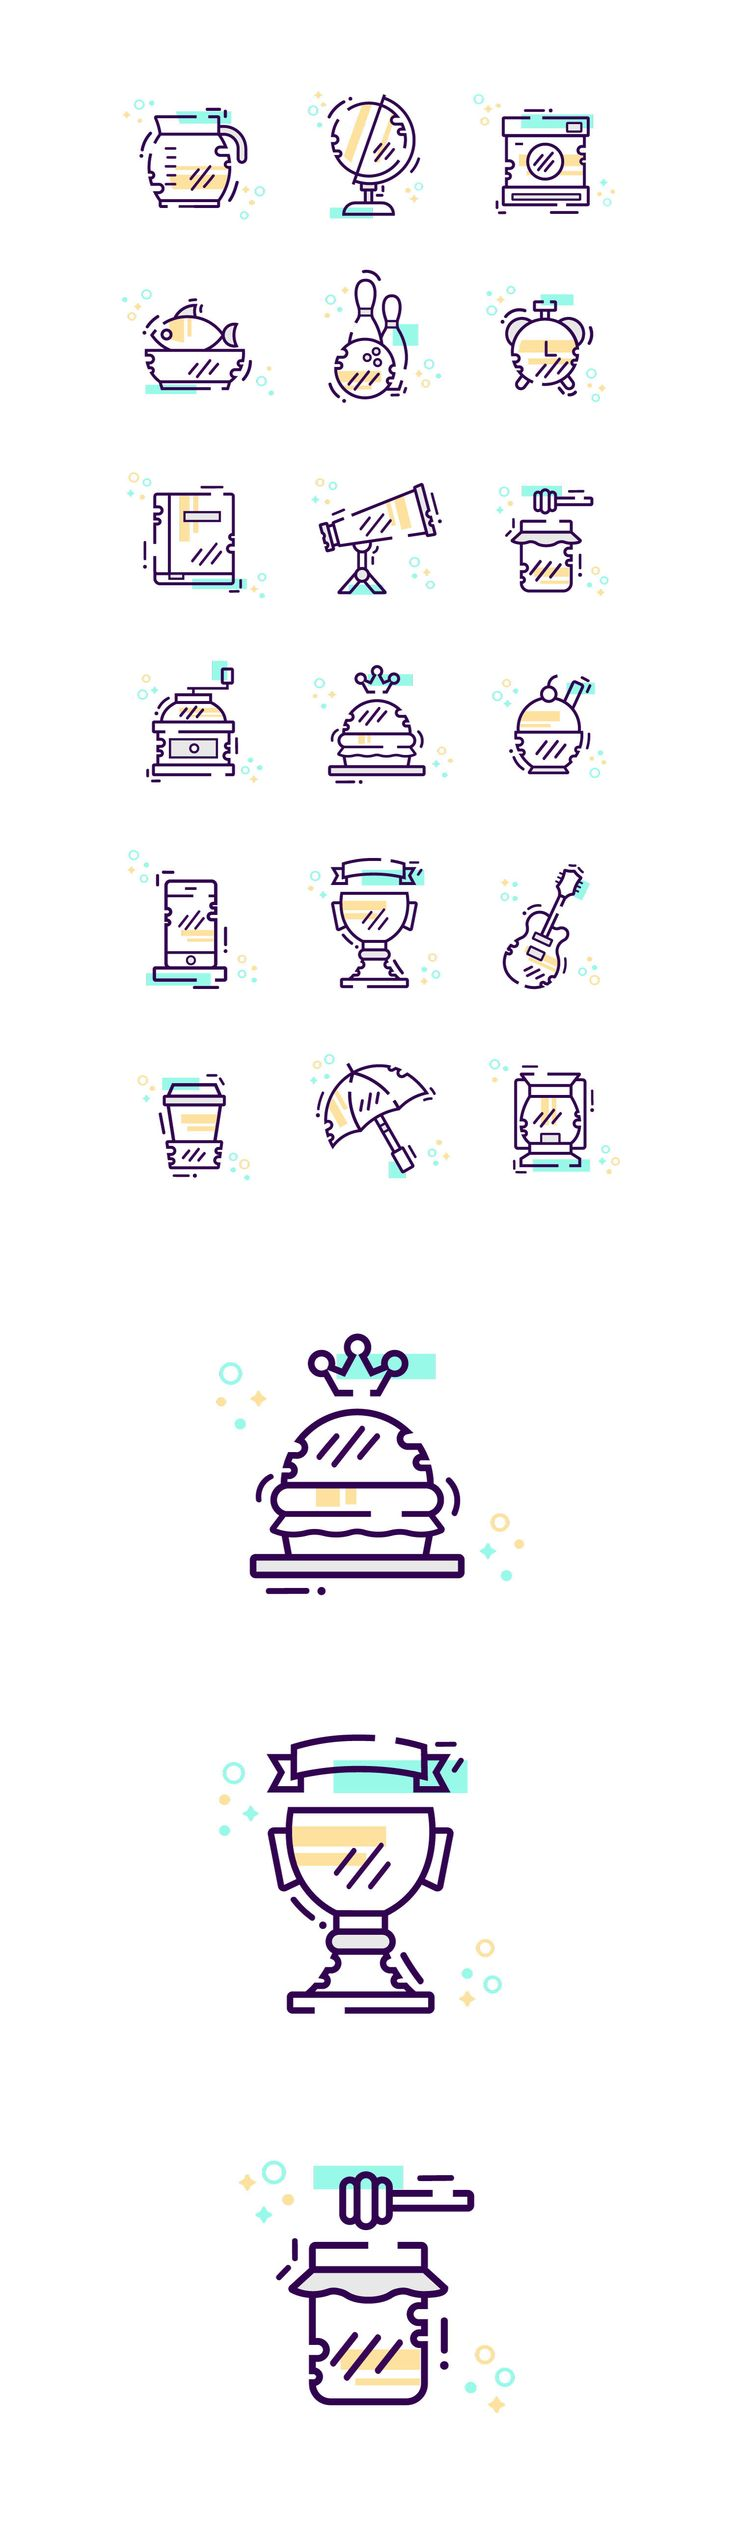 """Check out my @Behance project: """"Random icon set"""" https://www.behance.net/gallery/50567681/Random-icon-set"""